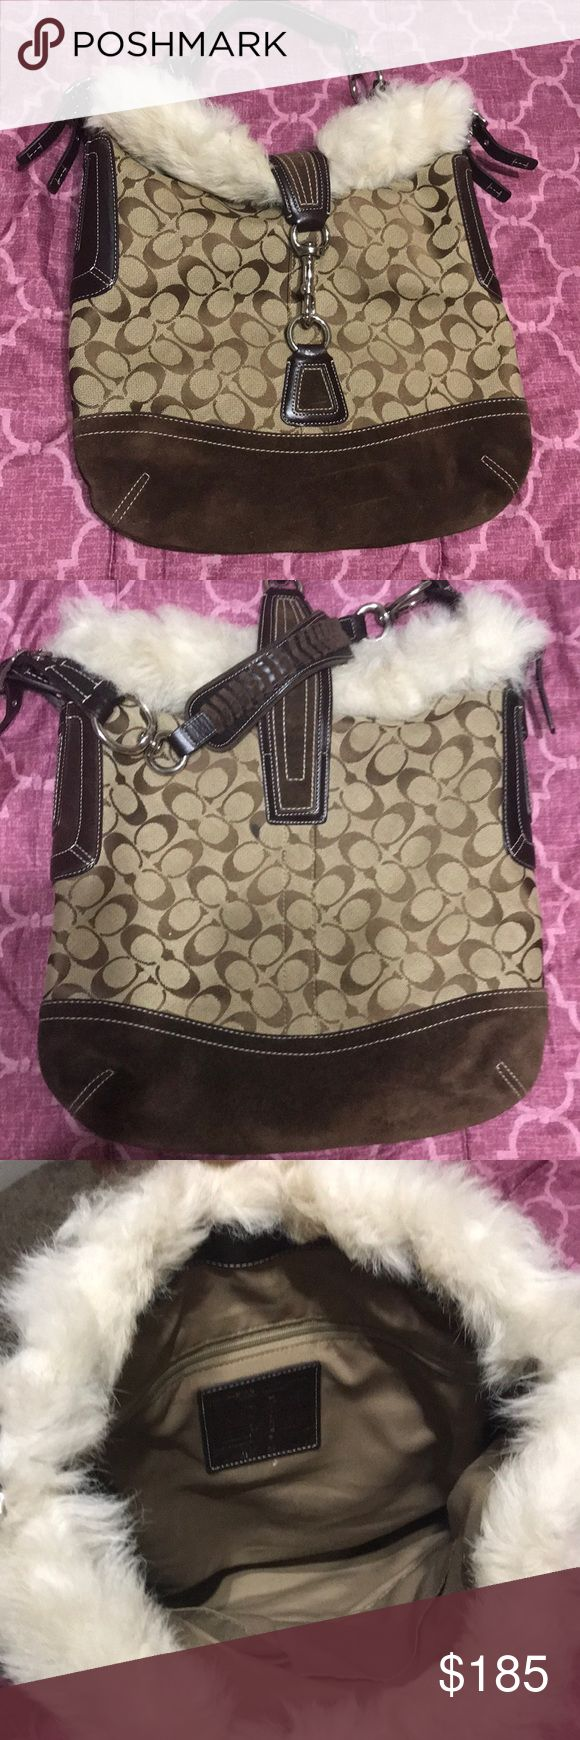 Shearling COACH Purse!! Price firm. 100%Authentic shearling fur and suede bottom purse. Only used a few times, a bit too heavy for me because of the fur and too big for my style. Have had for years but just sitting in my closet looking for it's new home! Coach Bags Shoulder Bags